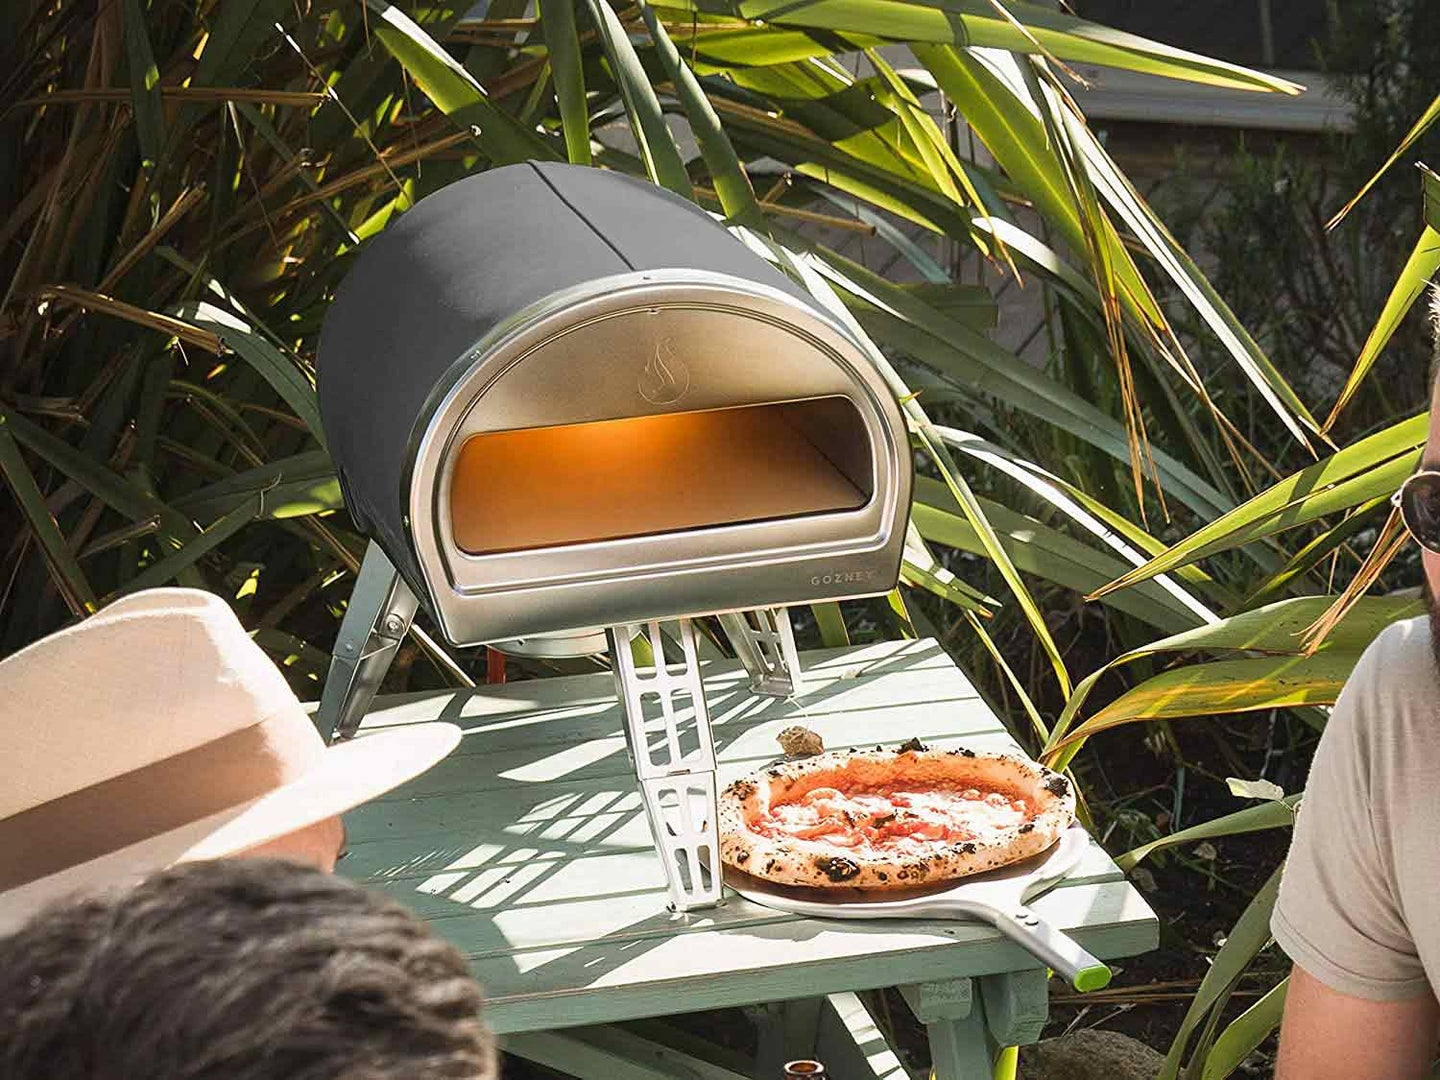 Pizza oven outside cooking pizza.